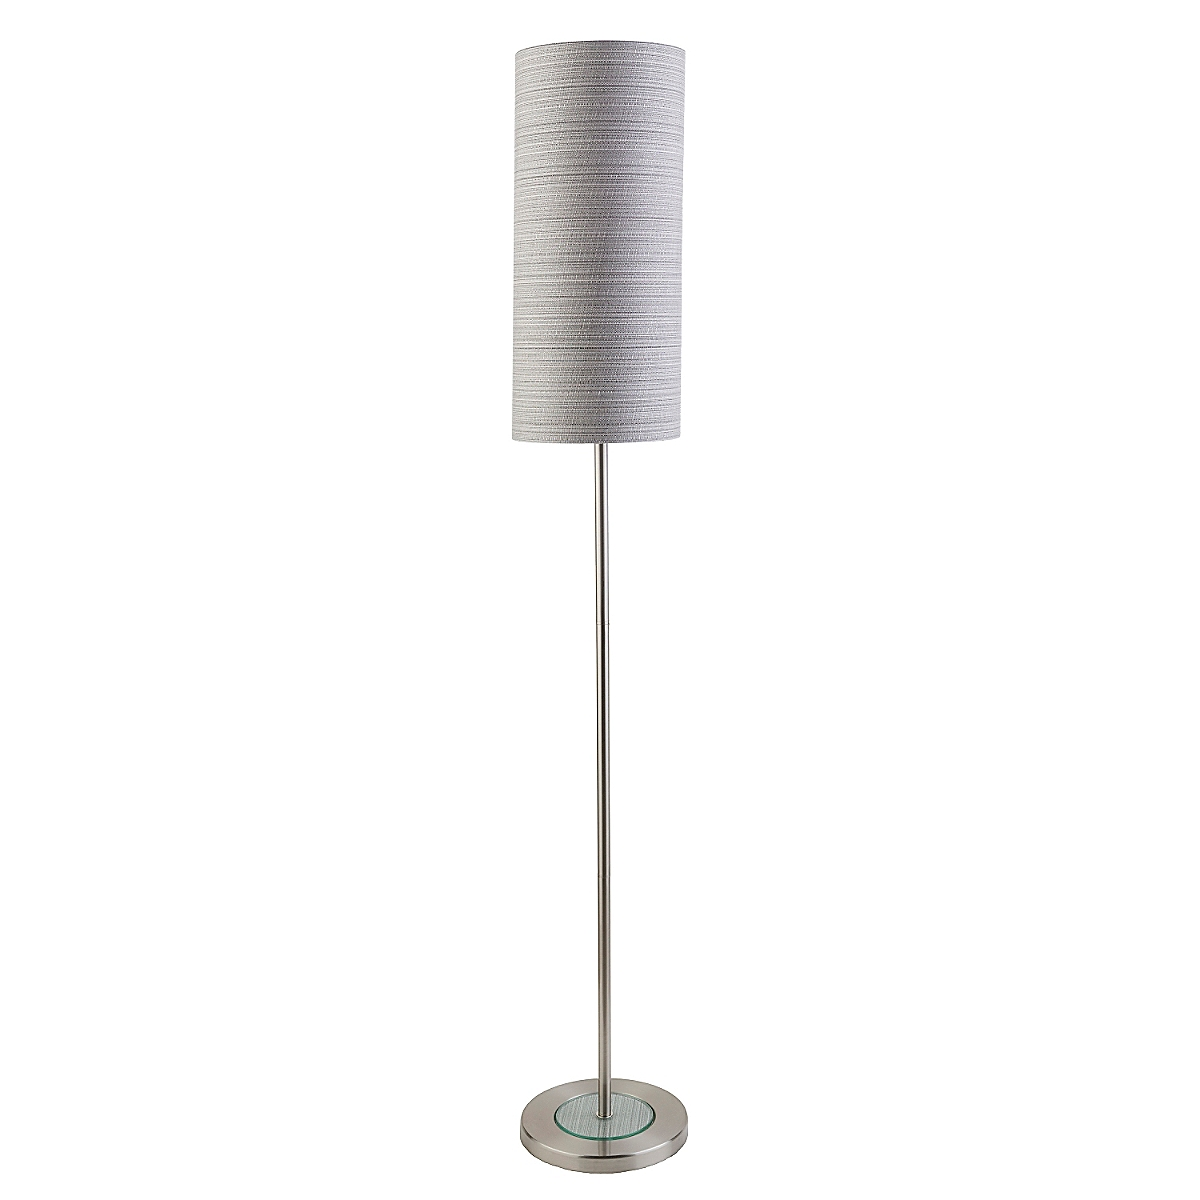 Amaya Floor Lamp - Gray